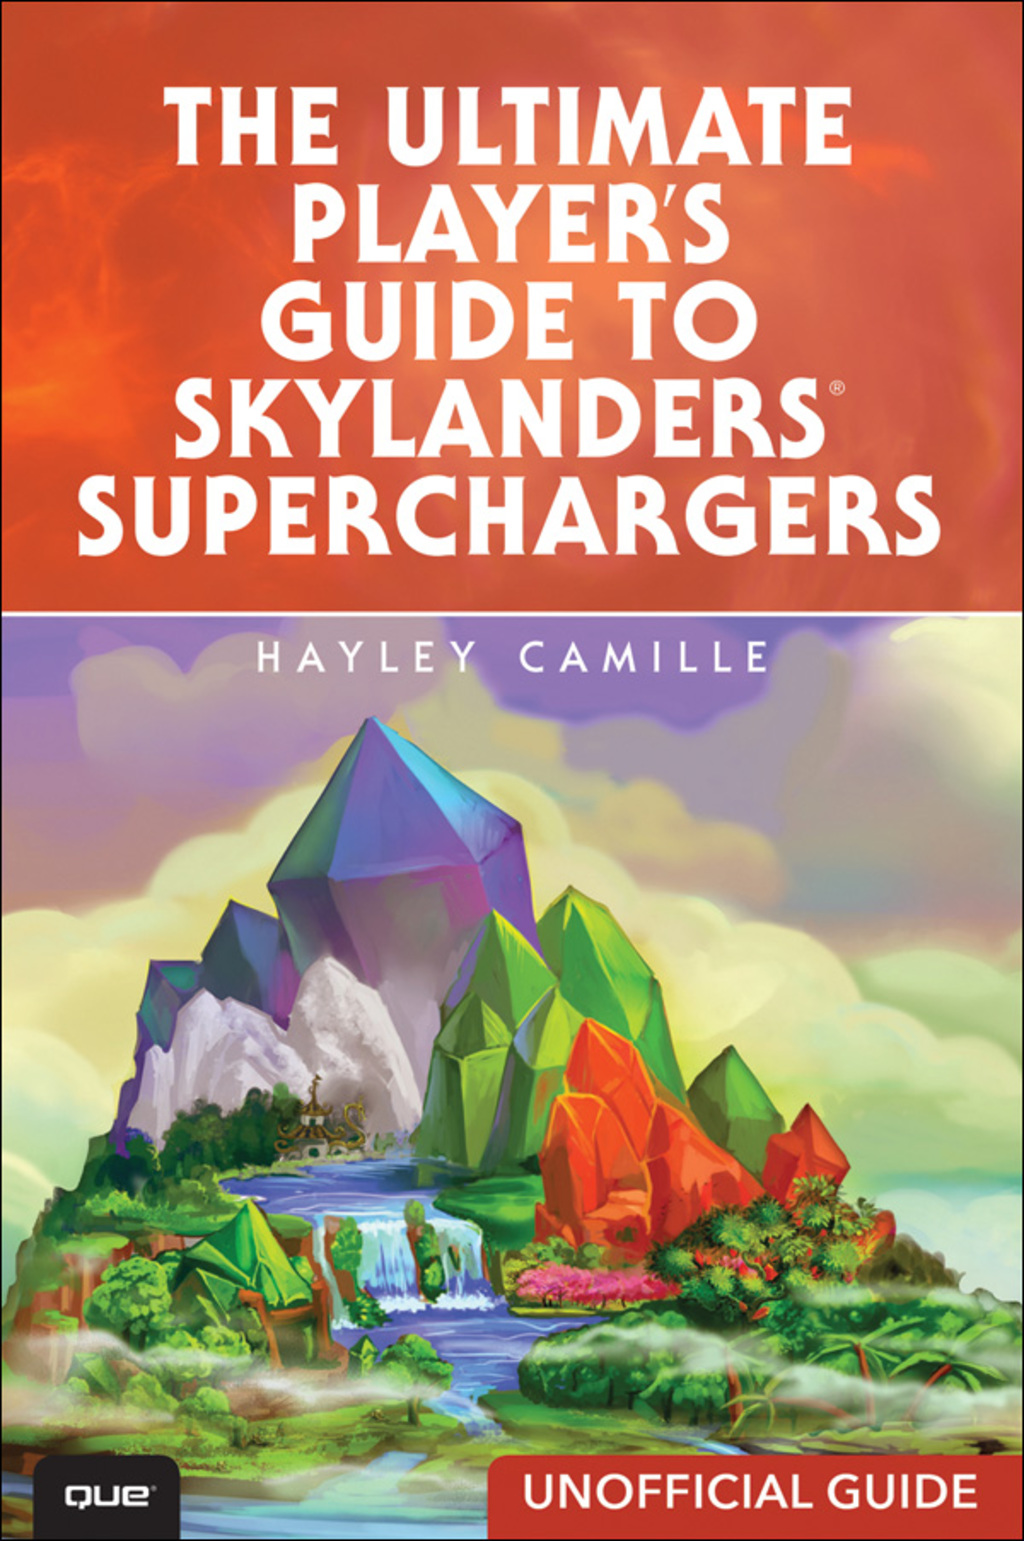 The Ultimate Player's Guide to Skylanders SuperChargers (Unofficial Guide) (ebook) eBooks